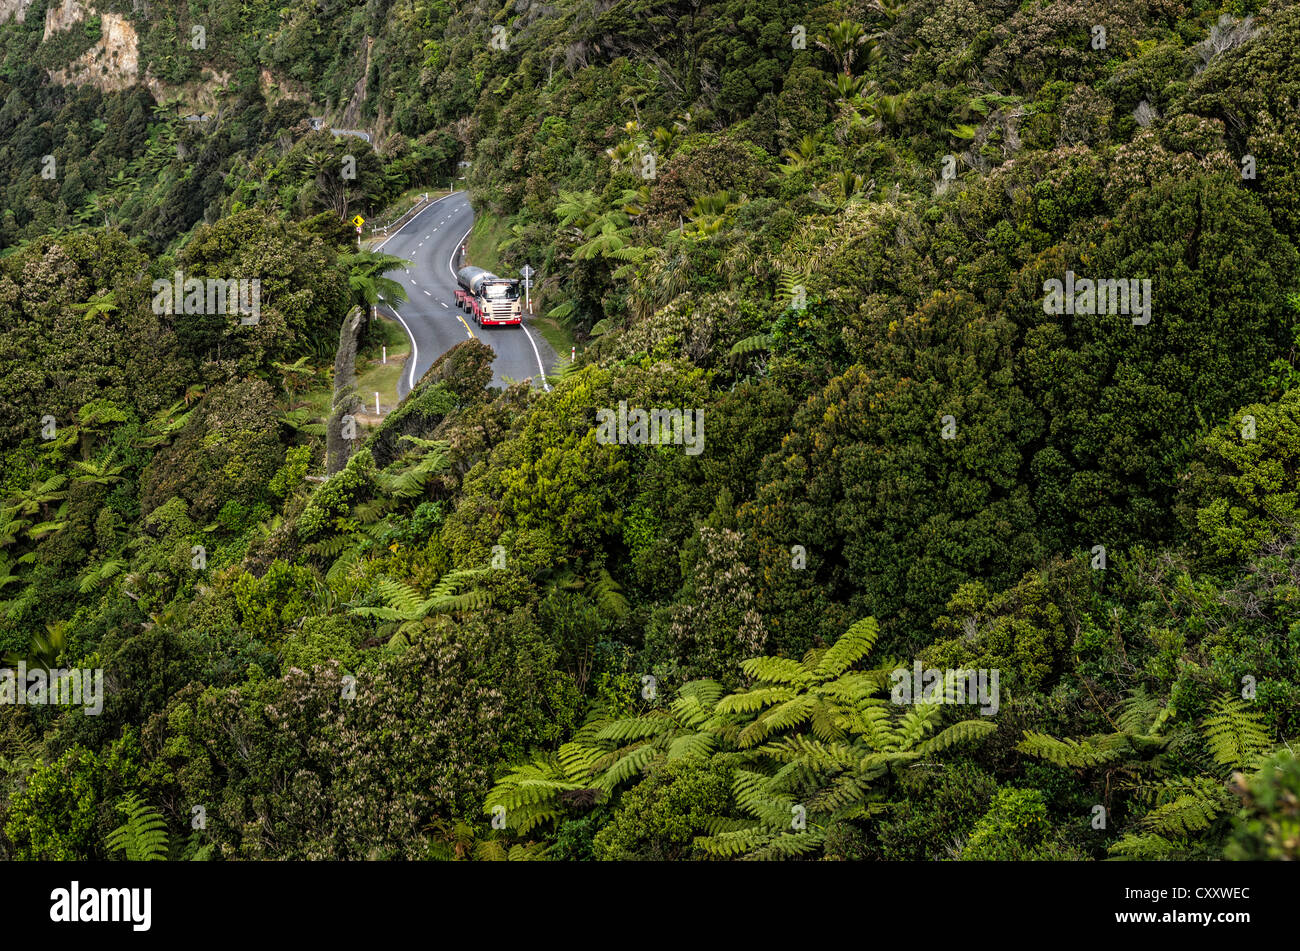 Truck on a country road in dense rain forest, Paparoa National Park, Punakaiki, South Island, New Zealand, Oceania - Stock Image